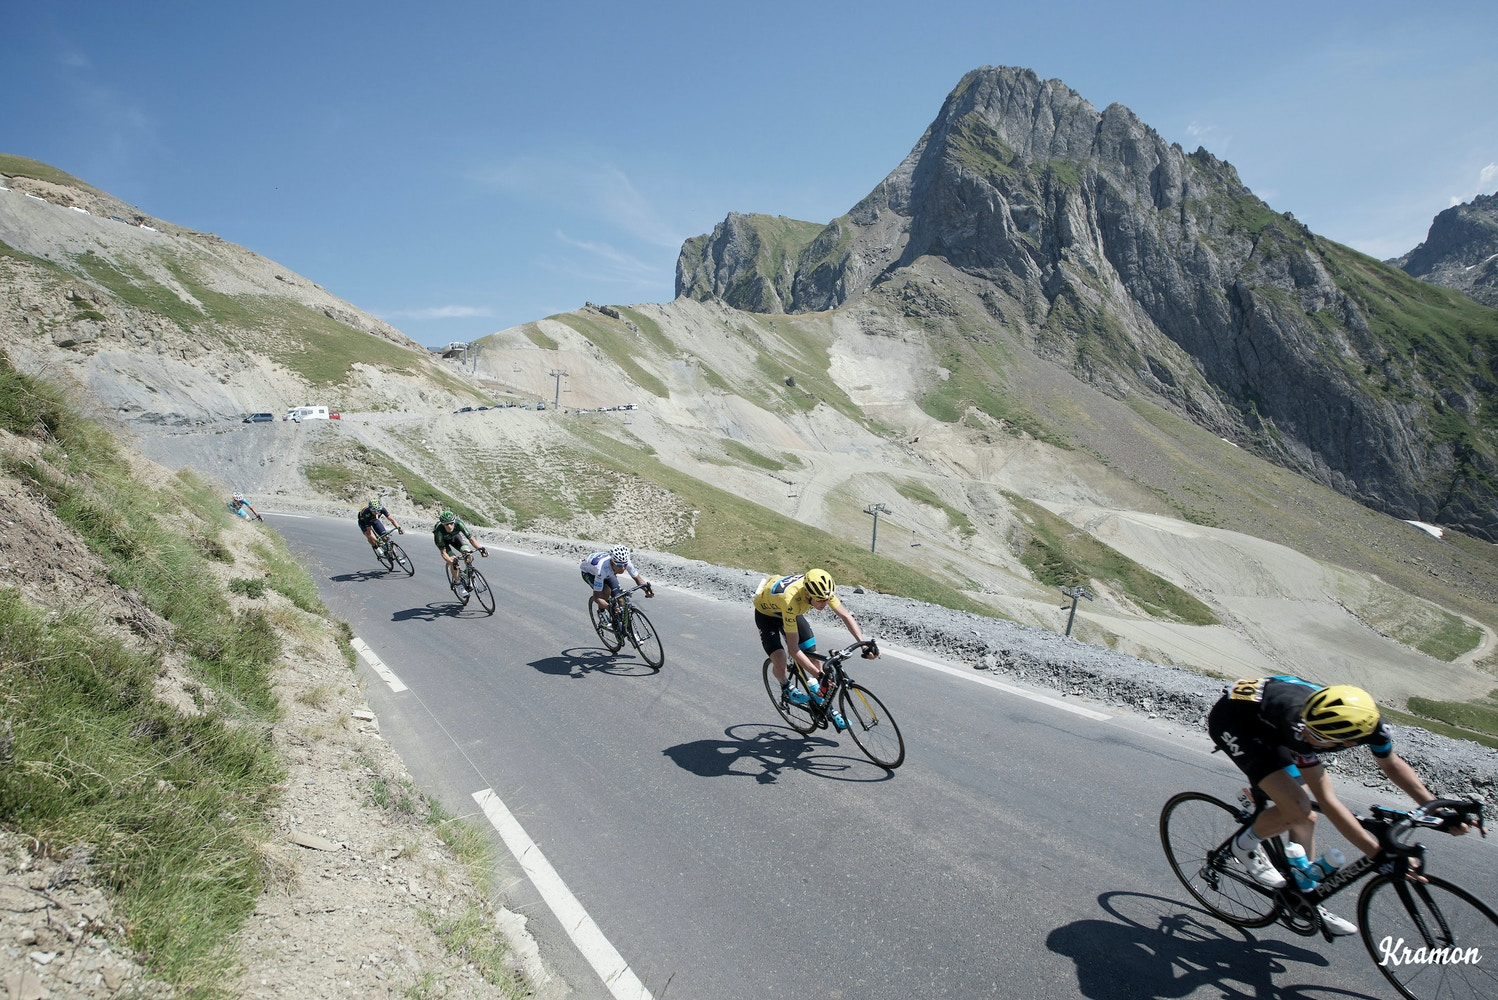 Pro Tips: How to Descend on a Road Bike